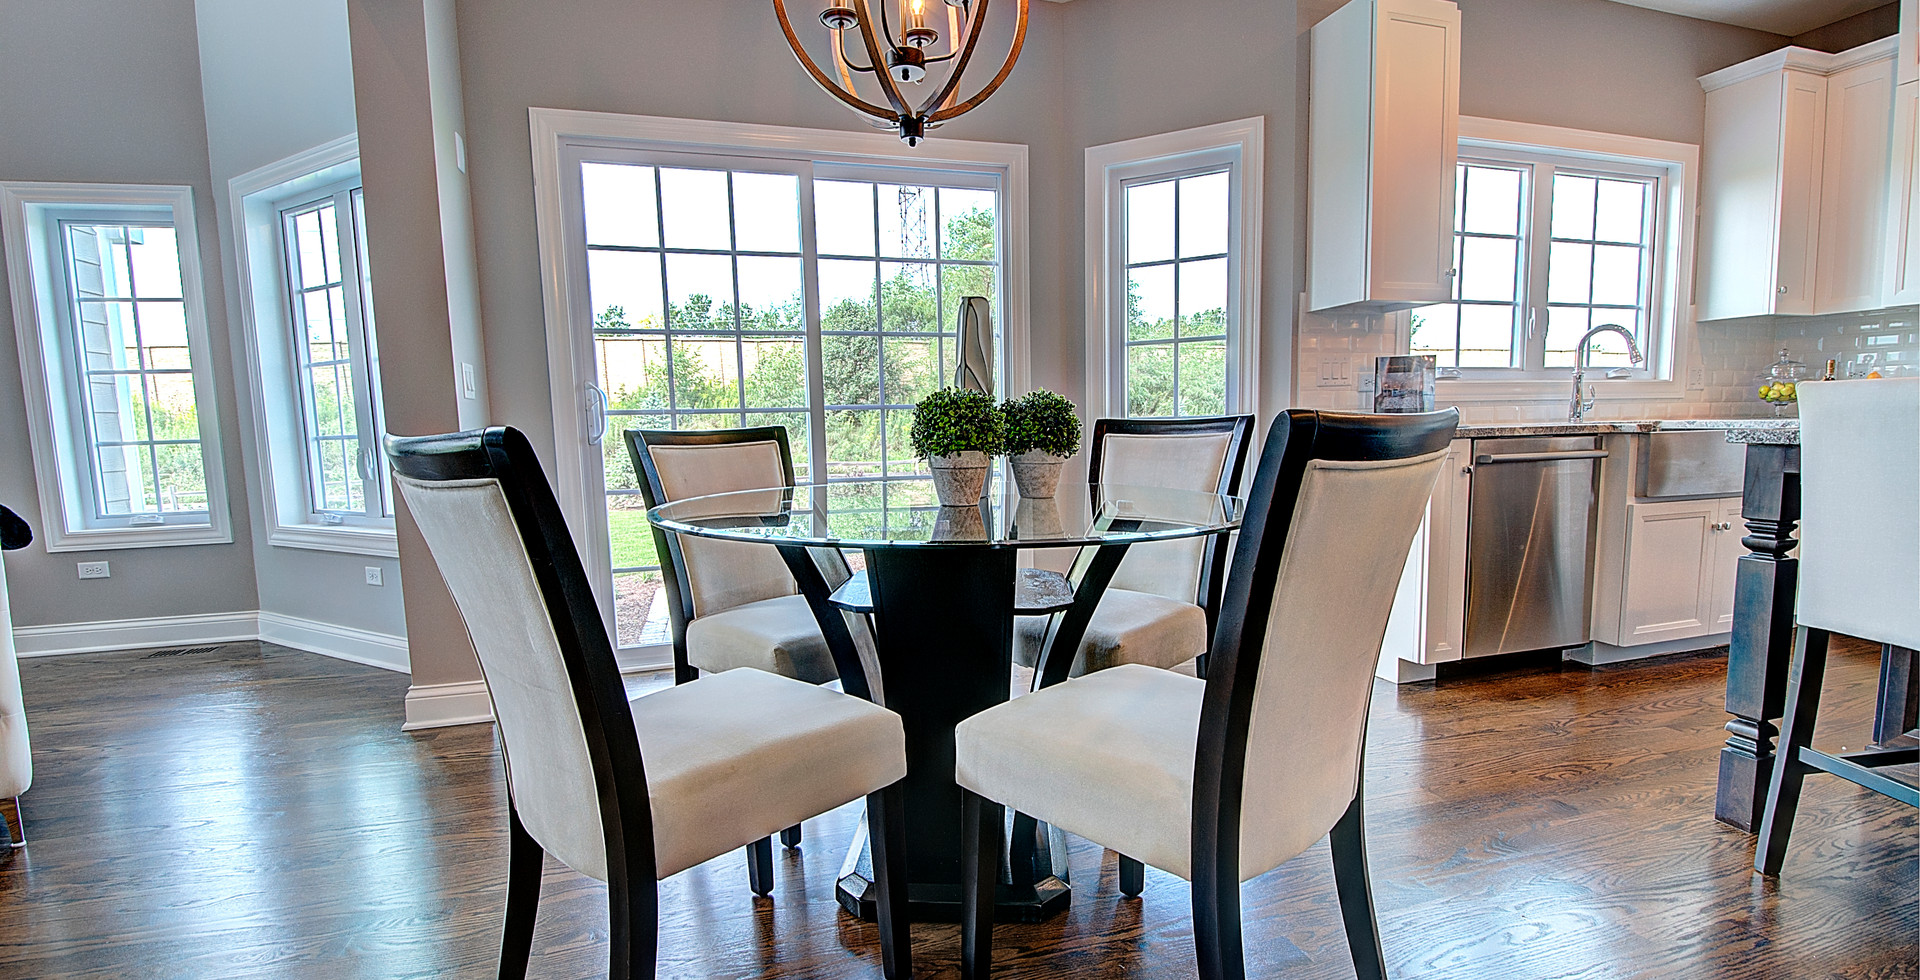 Dining Room in Wauconda designed by MRM Home Design.jpg